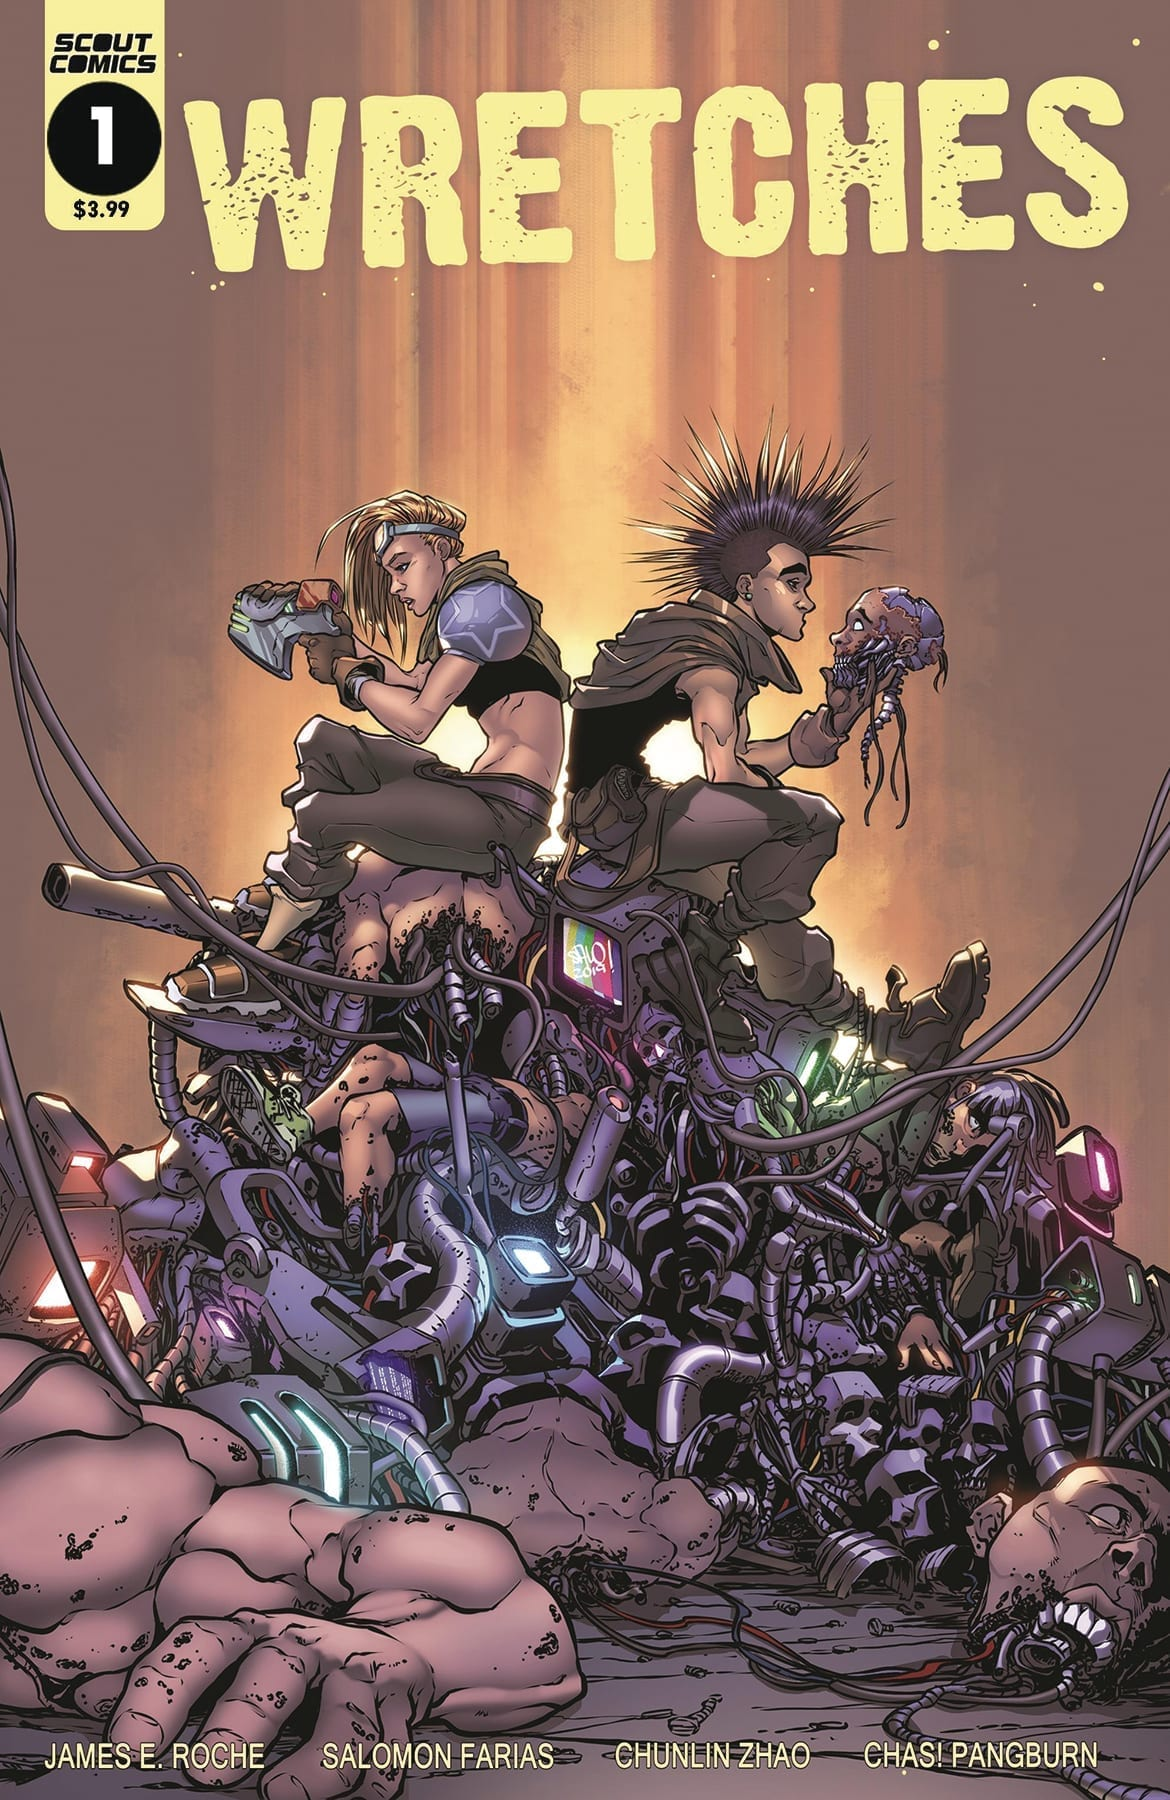 WRETCHES #1 Blasts Into Space With A Fantastic First Issue 4